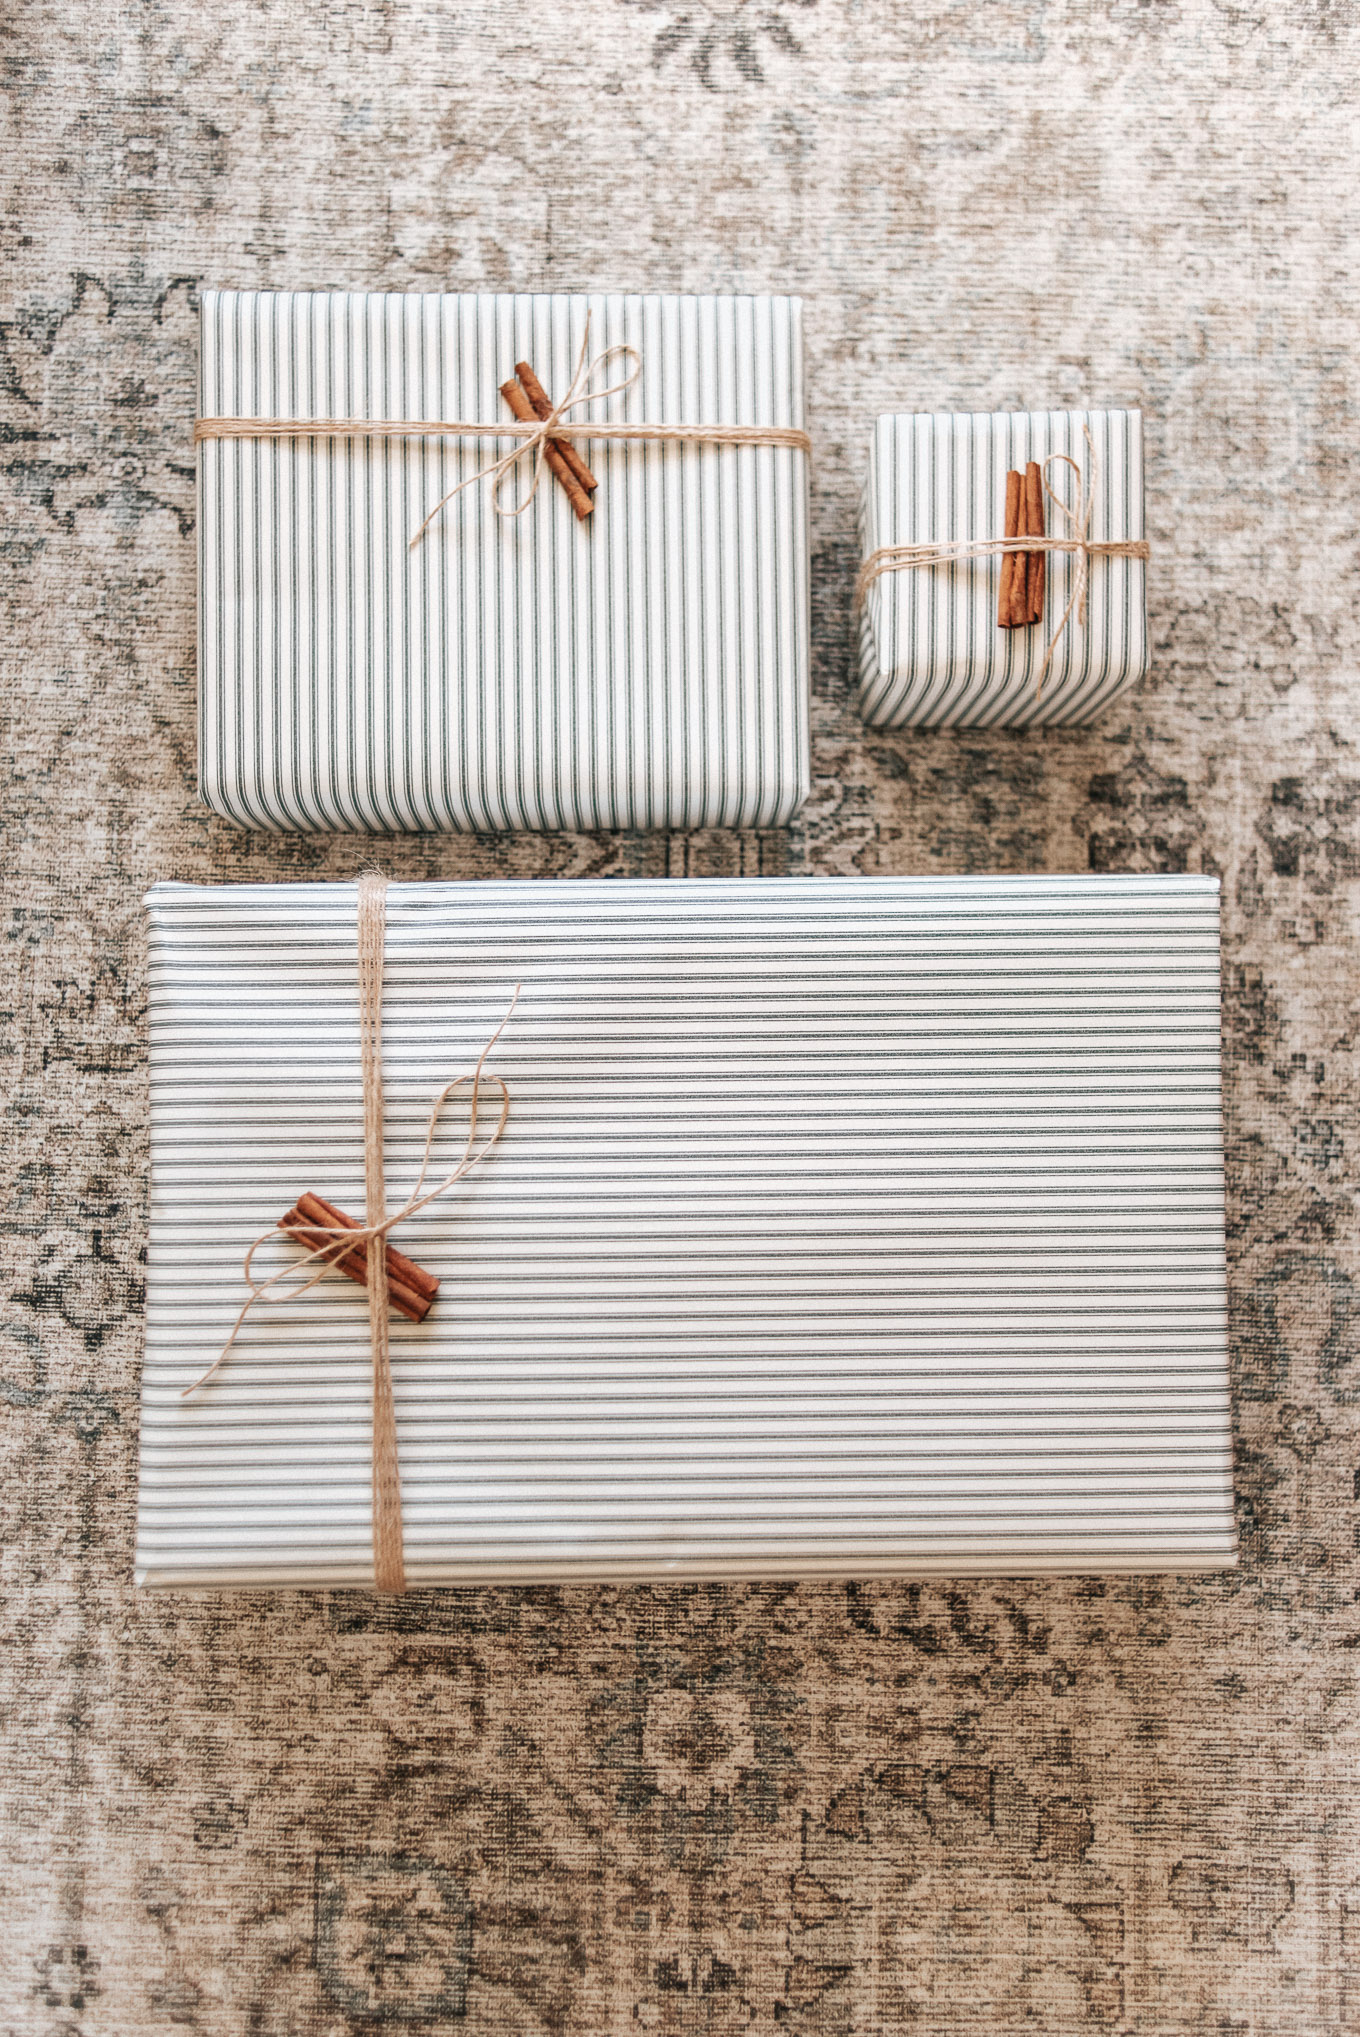 Holiday Wrapping Paper Ideas, Striped Wrapping Paper | Louella Reese